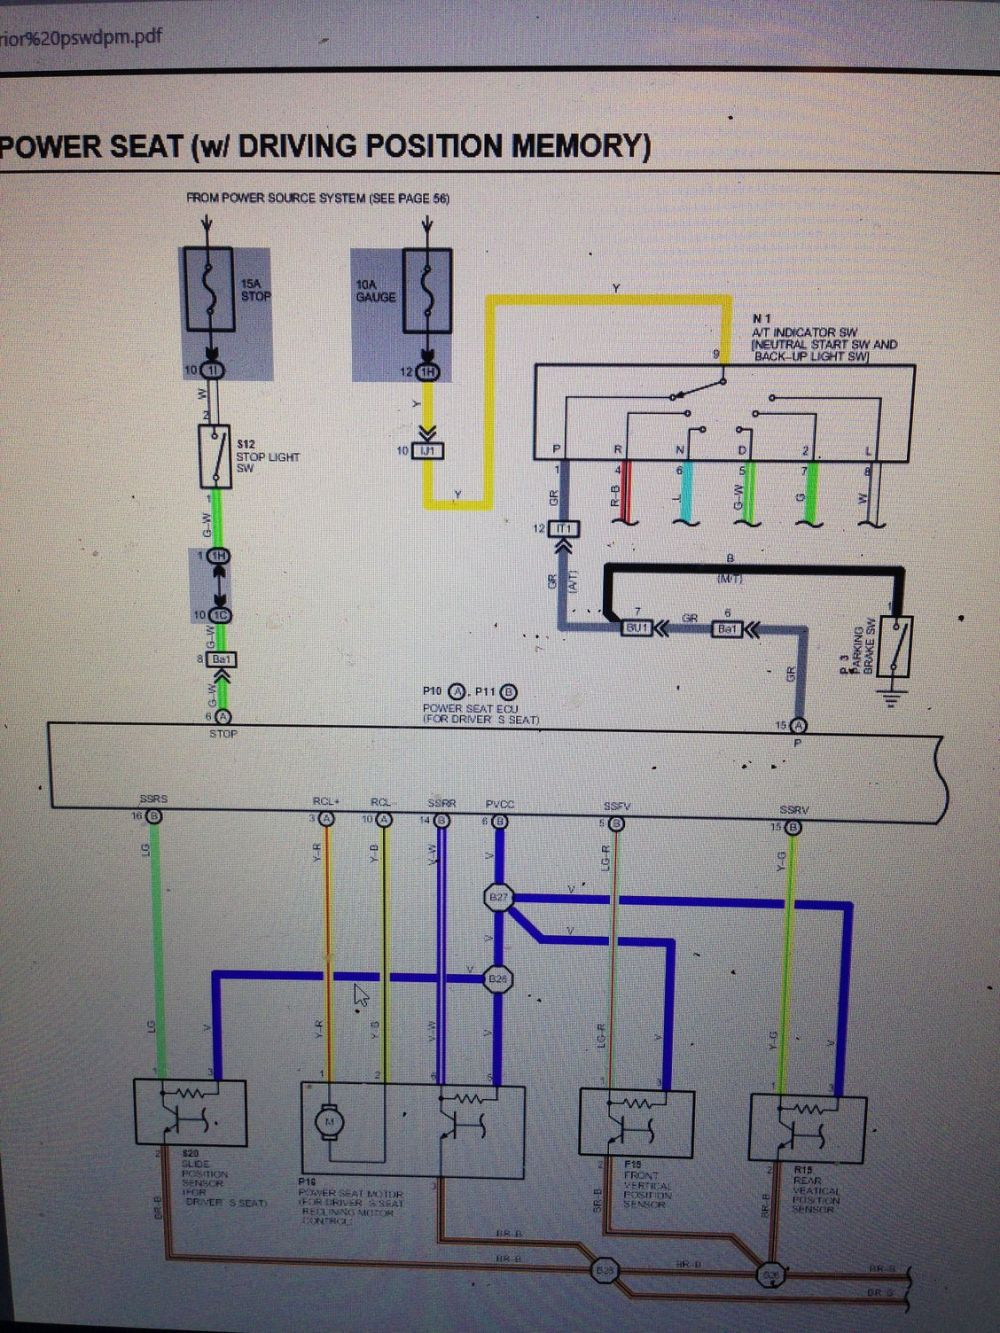 medium resolution of sc400 fuse diagram layout wiring diagrams u2022 rh laurafinlay co uk 1995 lexus sc300 fuse box